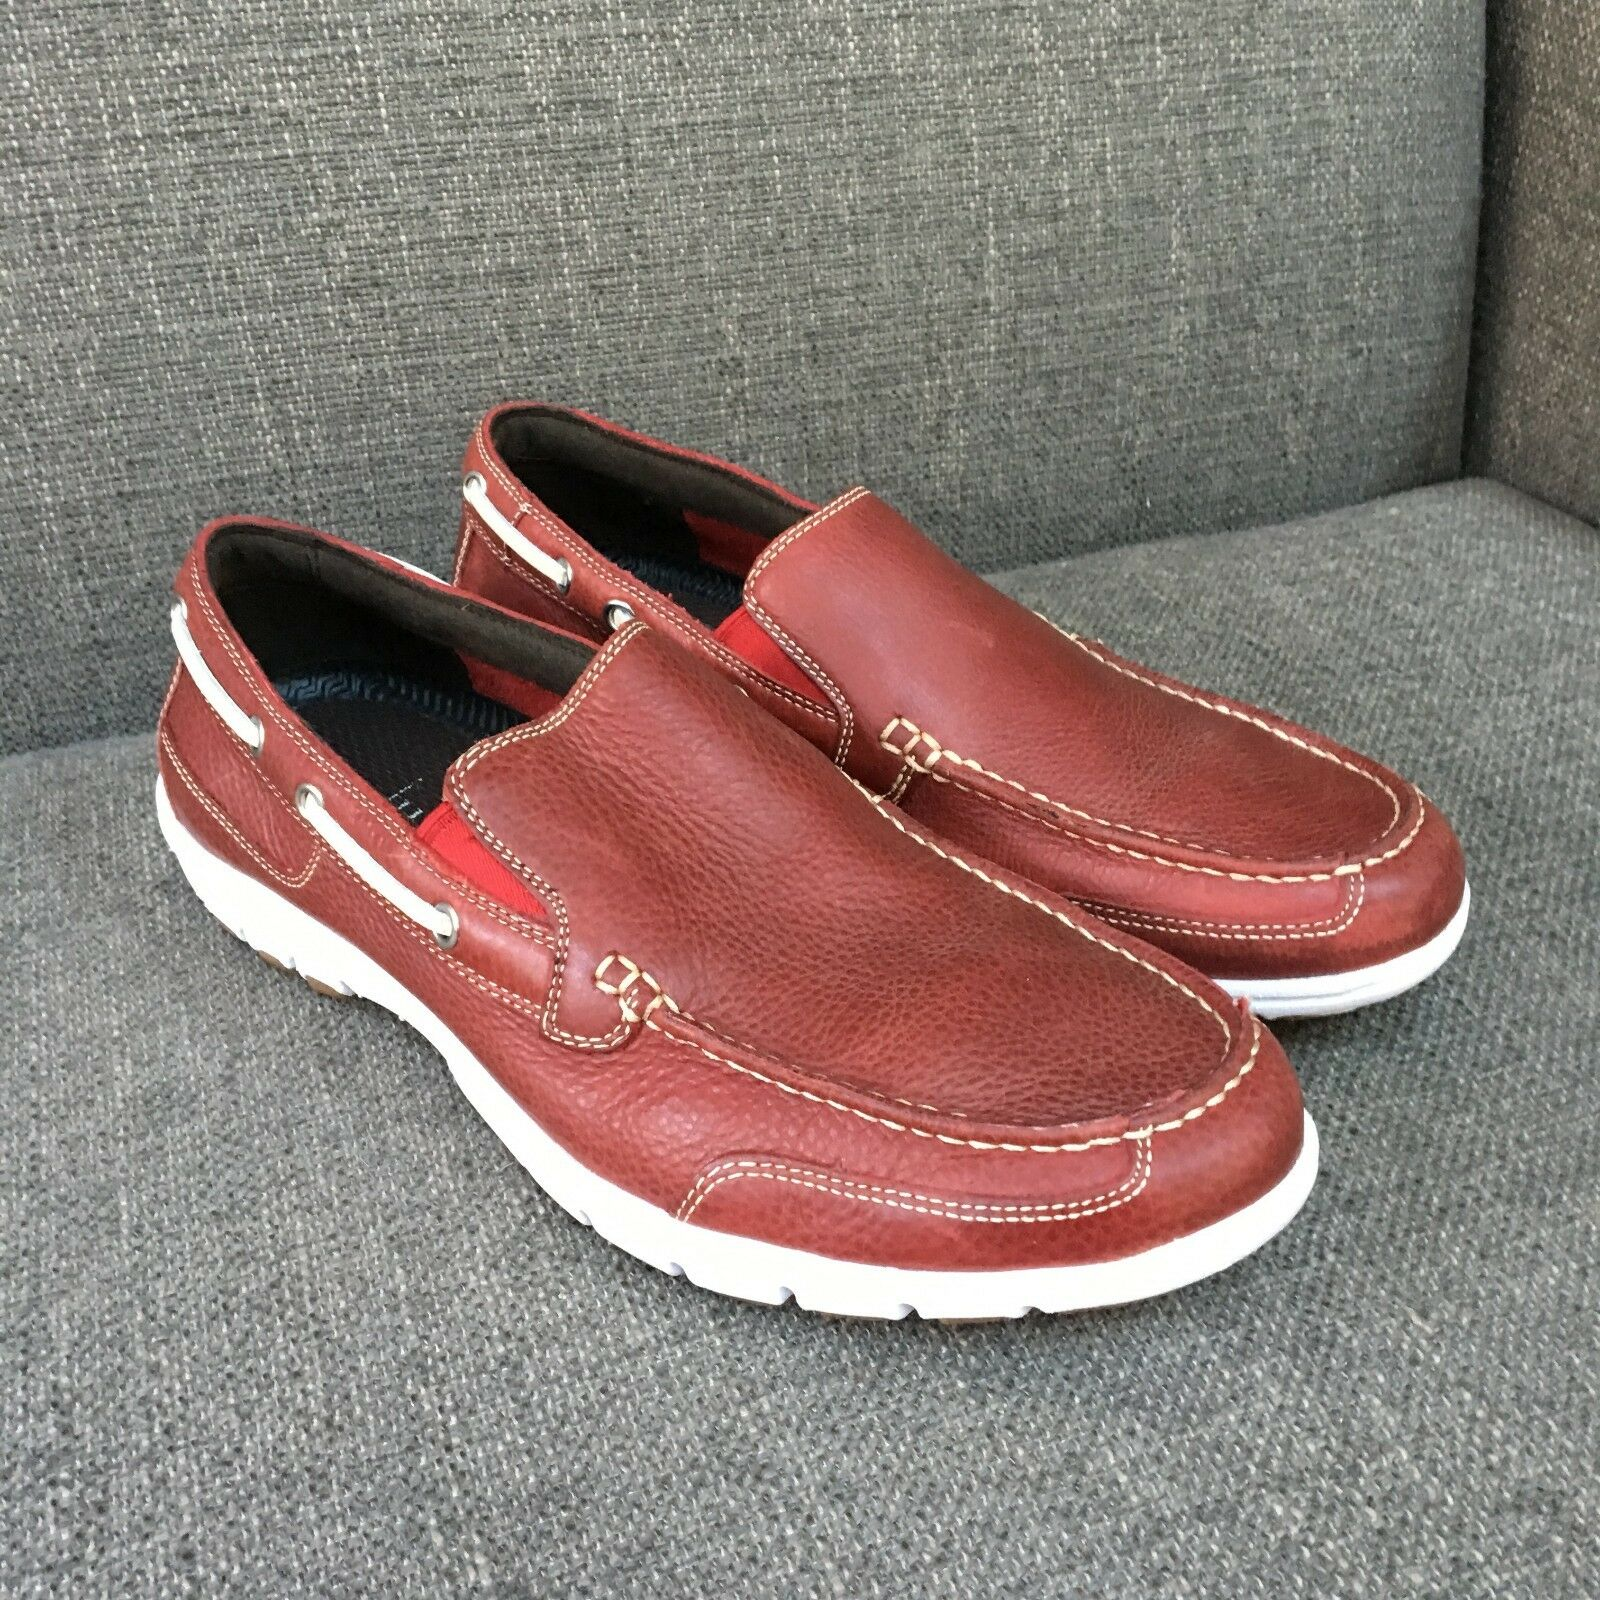 Cole Haan Red Venetian Boat shoes Loafer Men White Sole Preppy C10253 8.5